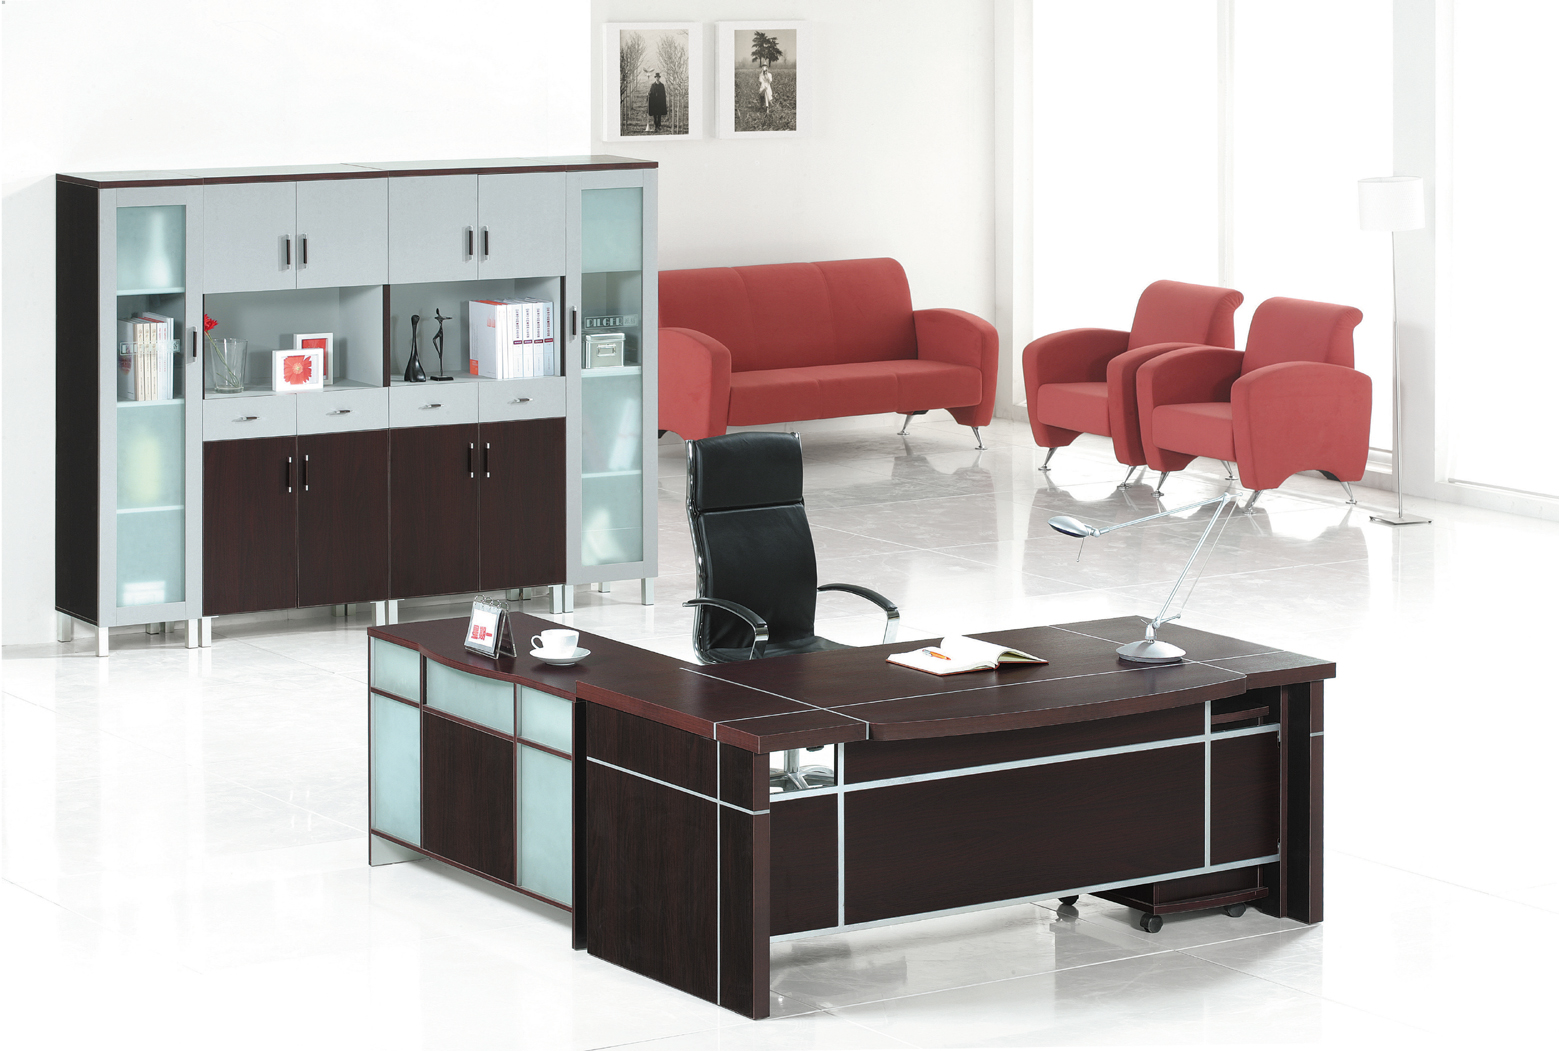 Hangzhou New Baihe Office Furniture Co Ltd Furniture Office Furniture Kitchen Furniture